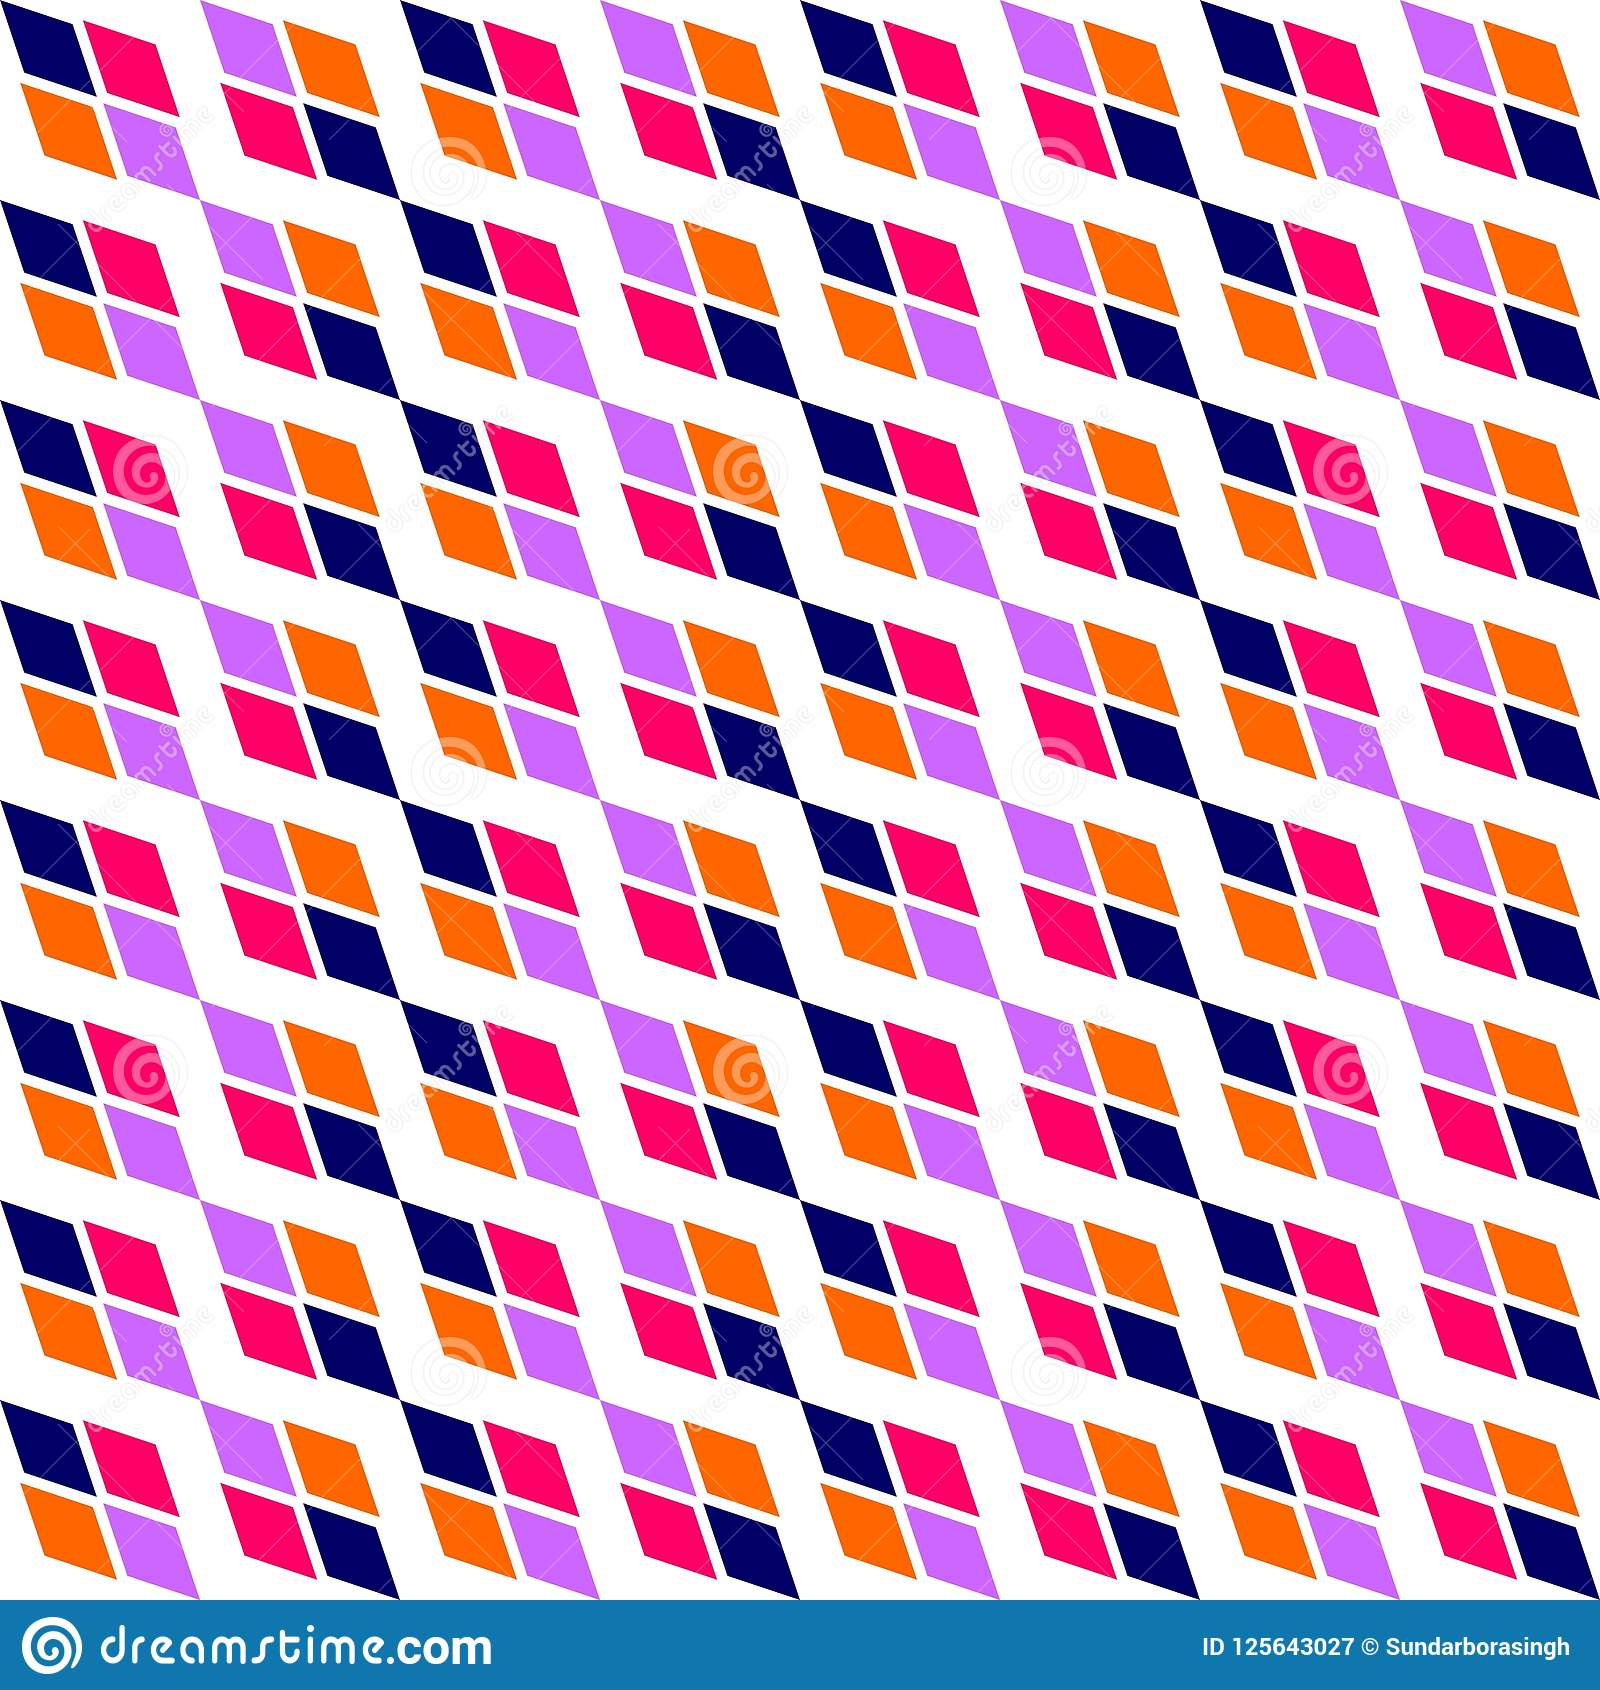 Geometric Colourful Diagonal Texture With Rhombuses Traditional